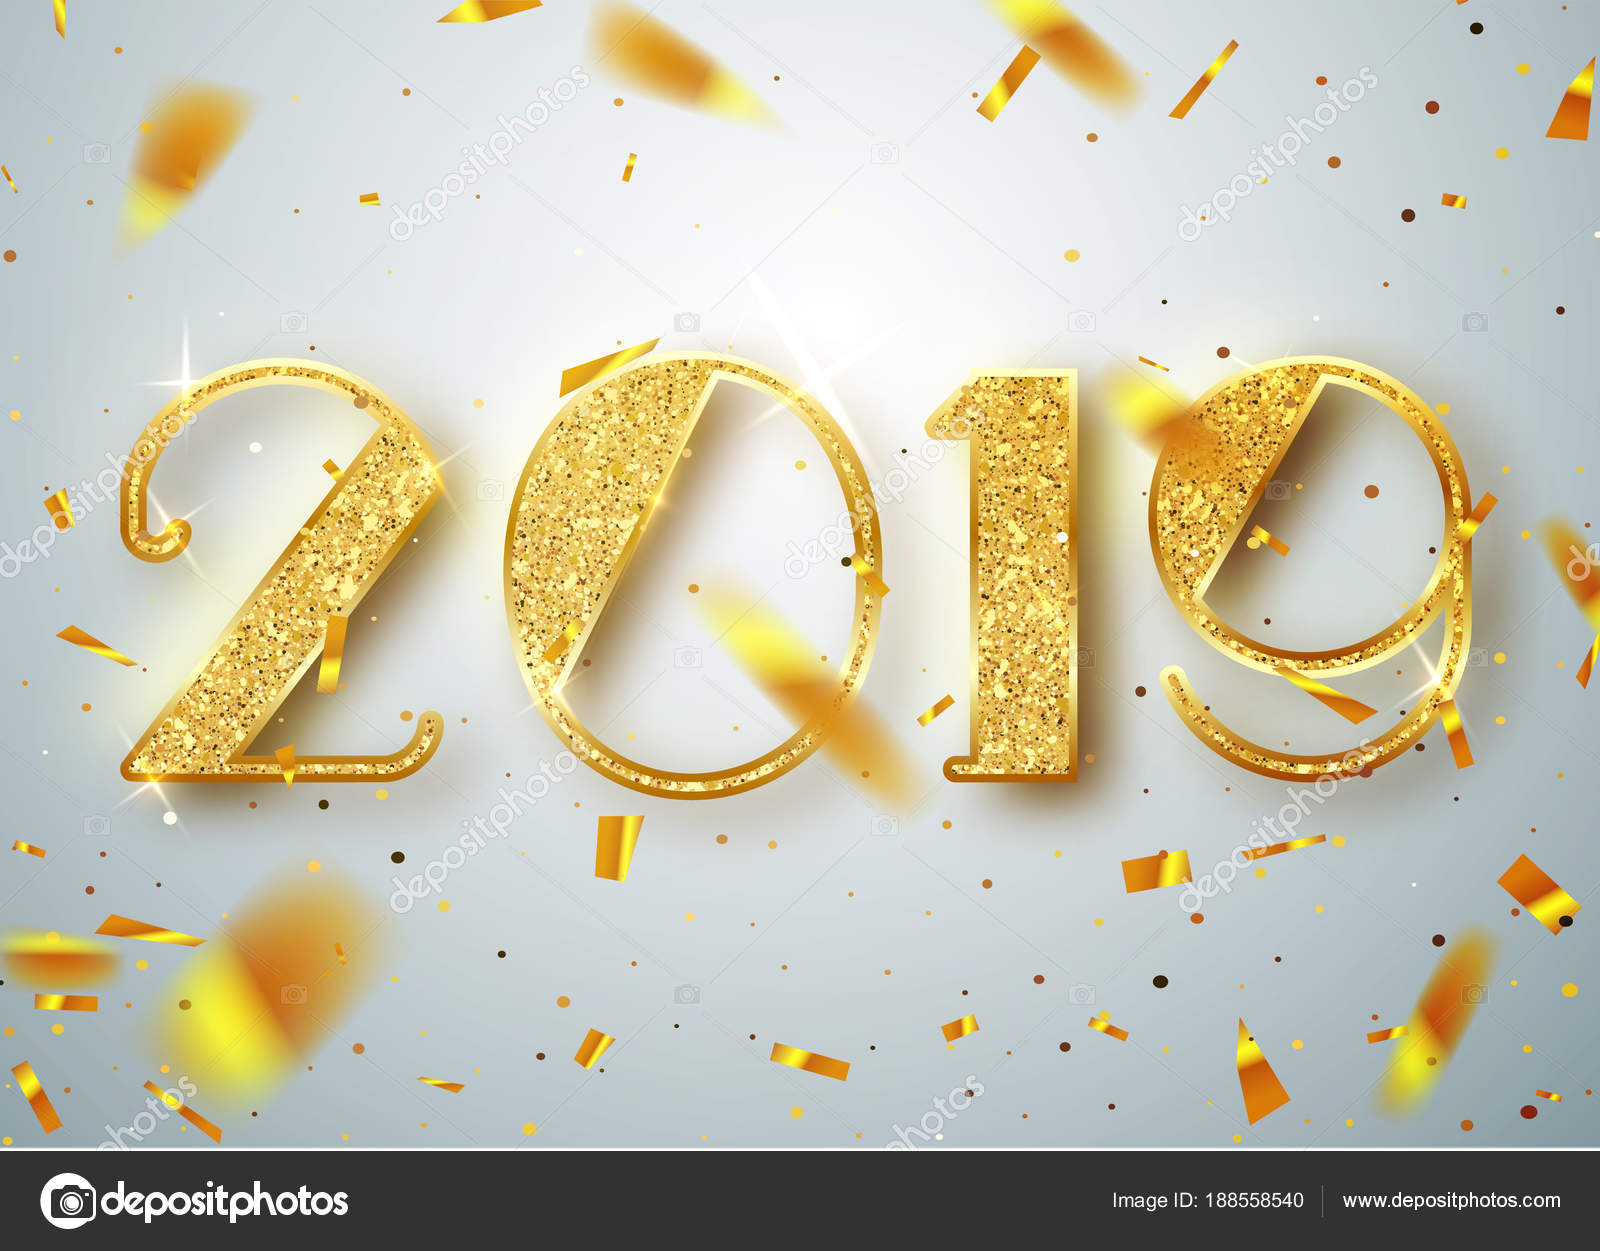 2019 happy new year gold numbers design of greeting card of gold numbers design of greeting card of falling shiny confetti kristyandbryce Choice Image